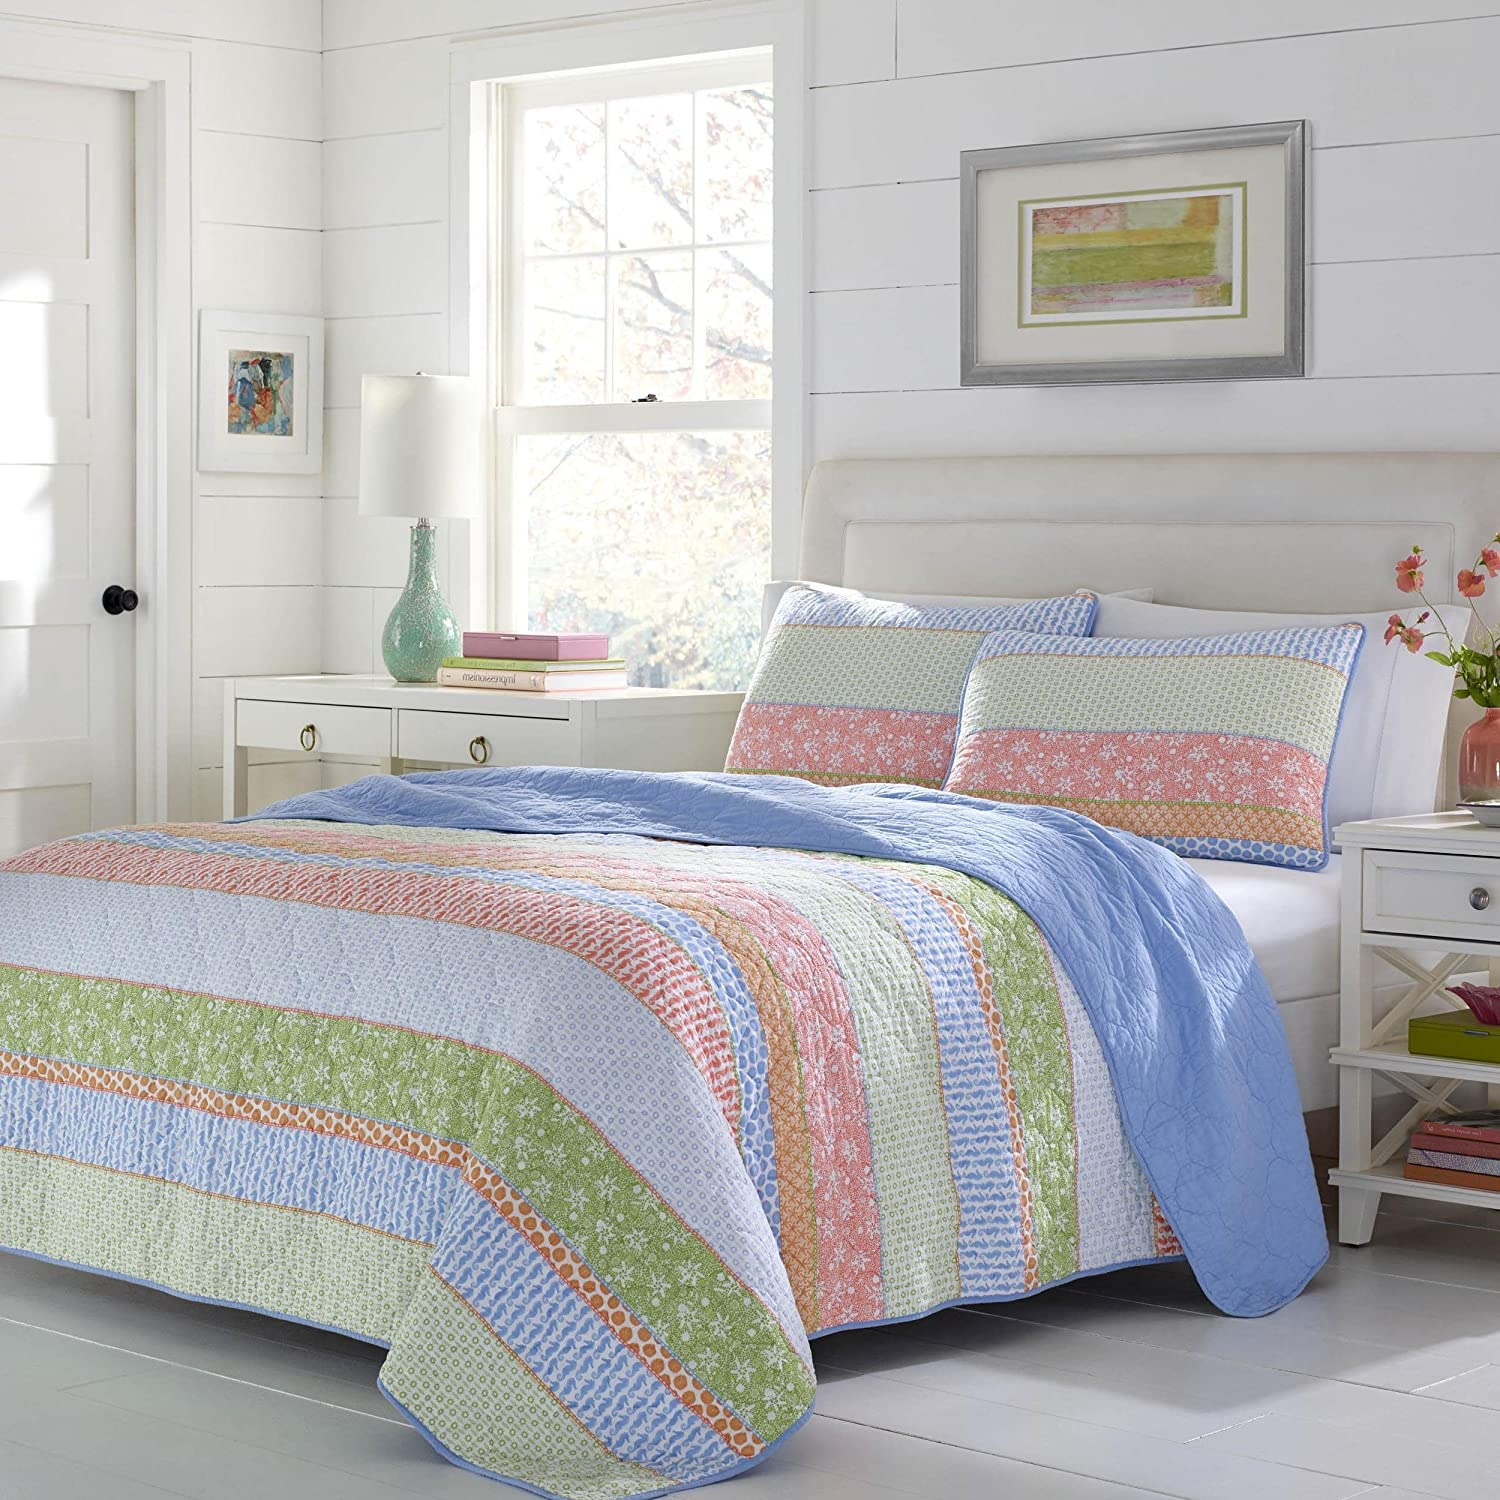 2 Piece Beautiful Bright Blue Green Orange Pink Twin Quilt Set, Stripe Patchwork Themed Reversible Bedding Bohemian Boho Coastal French Country Shabby Chic Vintage Vibrant Lime Chambray, Cotton